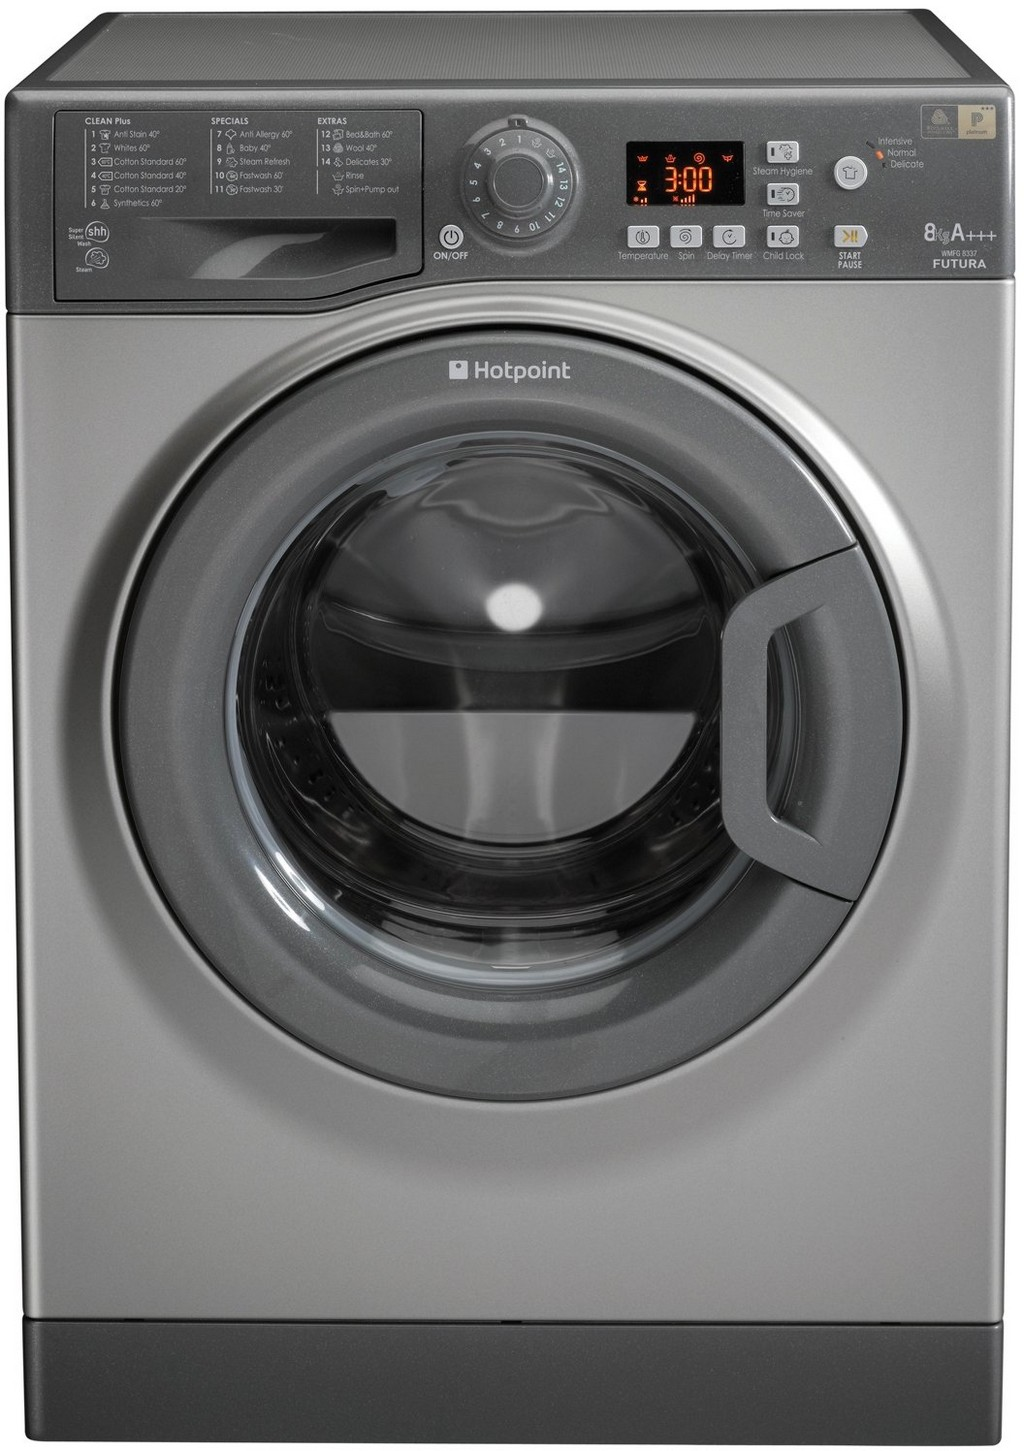 best washing machine brand, speed queen washing machine, whirlpool washer